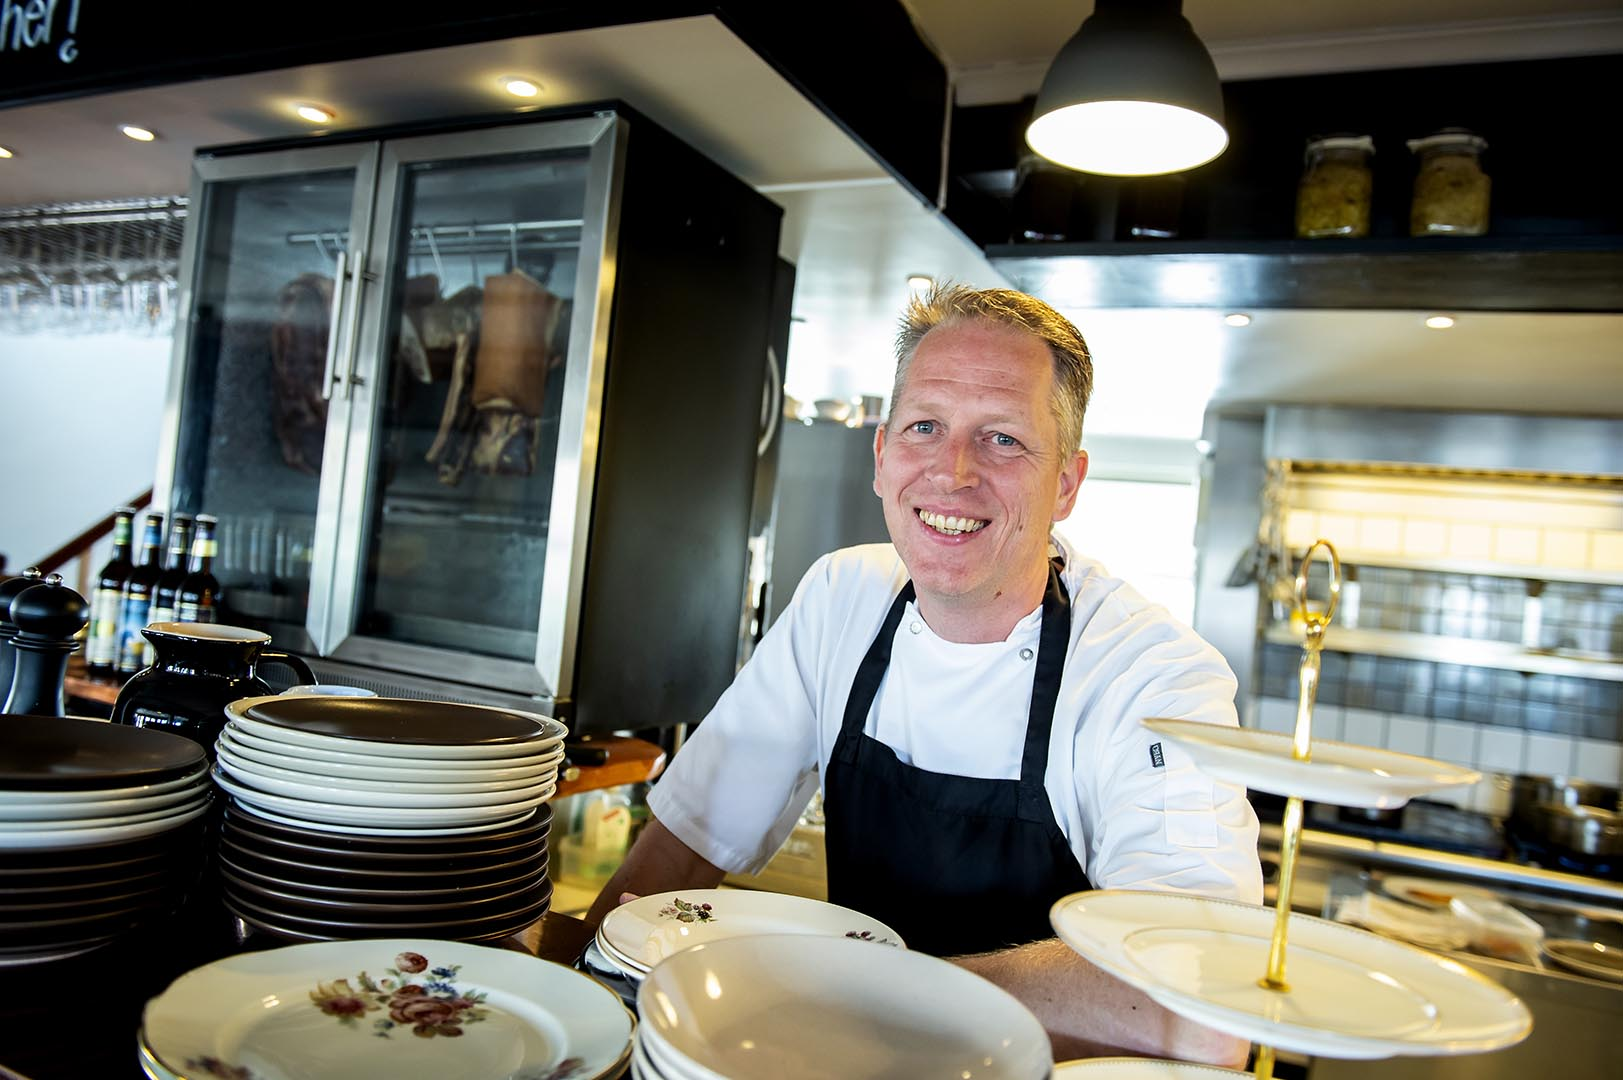 Tonny Kristensen. Restaurant Essens, Feel-good food in cosy surroundings, Scan Magazine